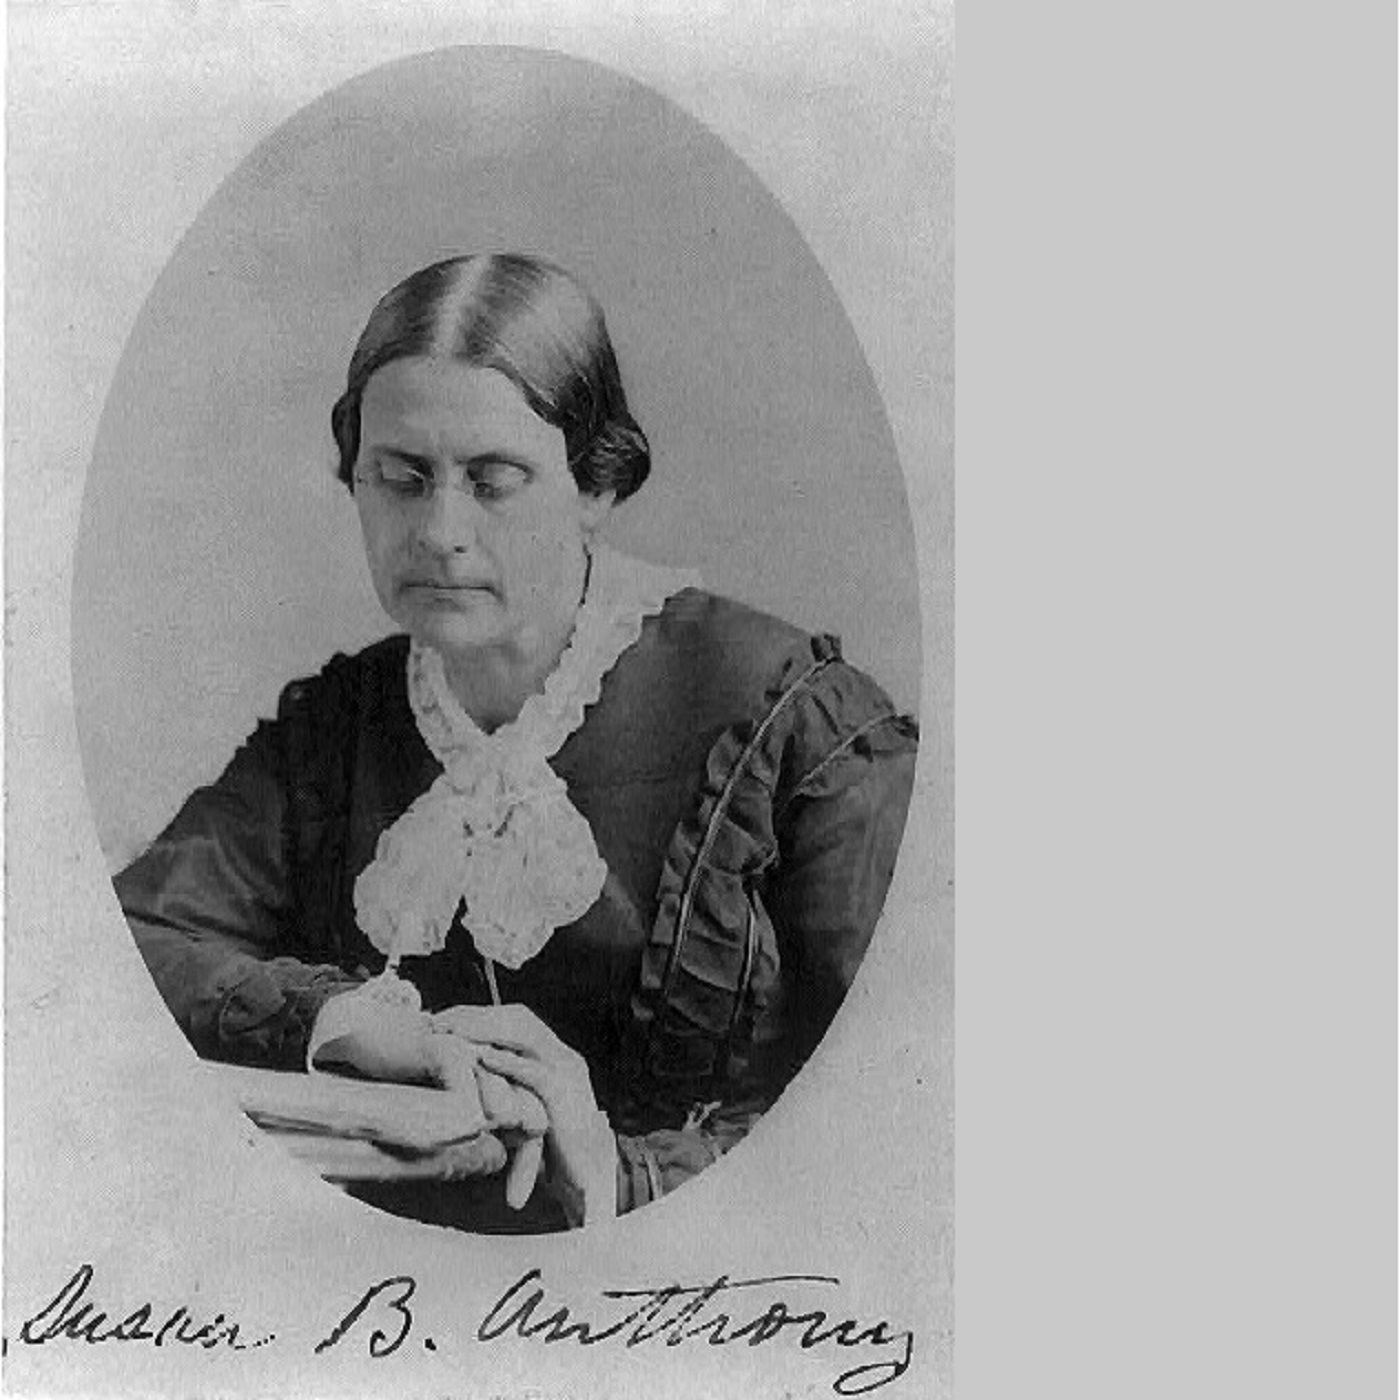 Leftovers from Don't Run for President: Susan B. Anthony Votes, The 1908 Election and More